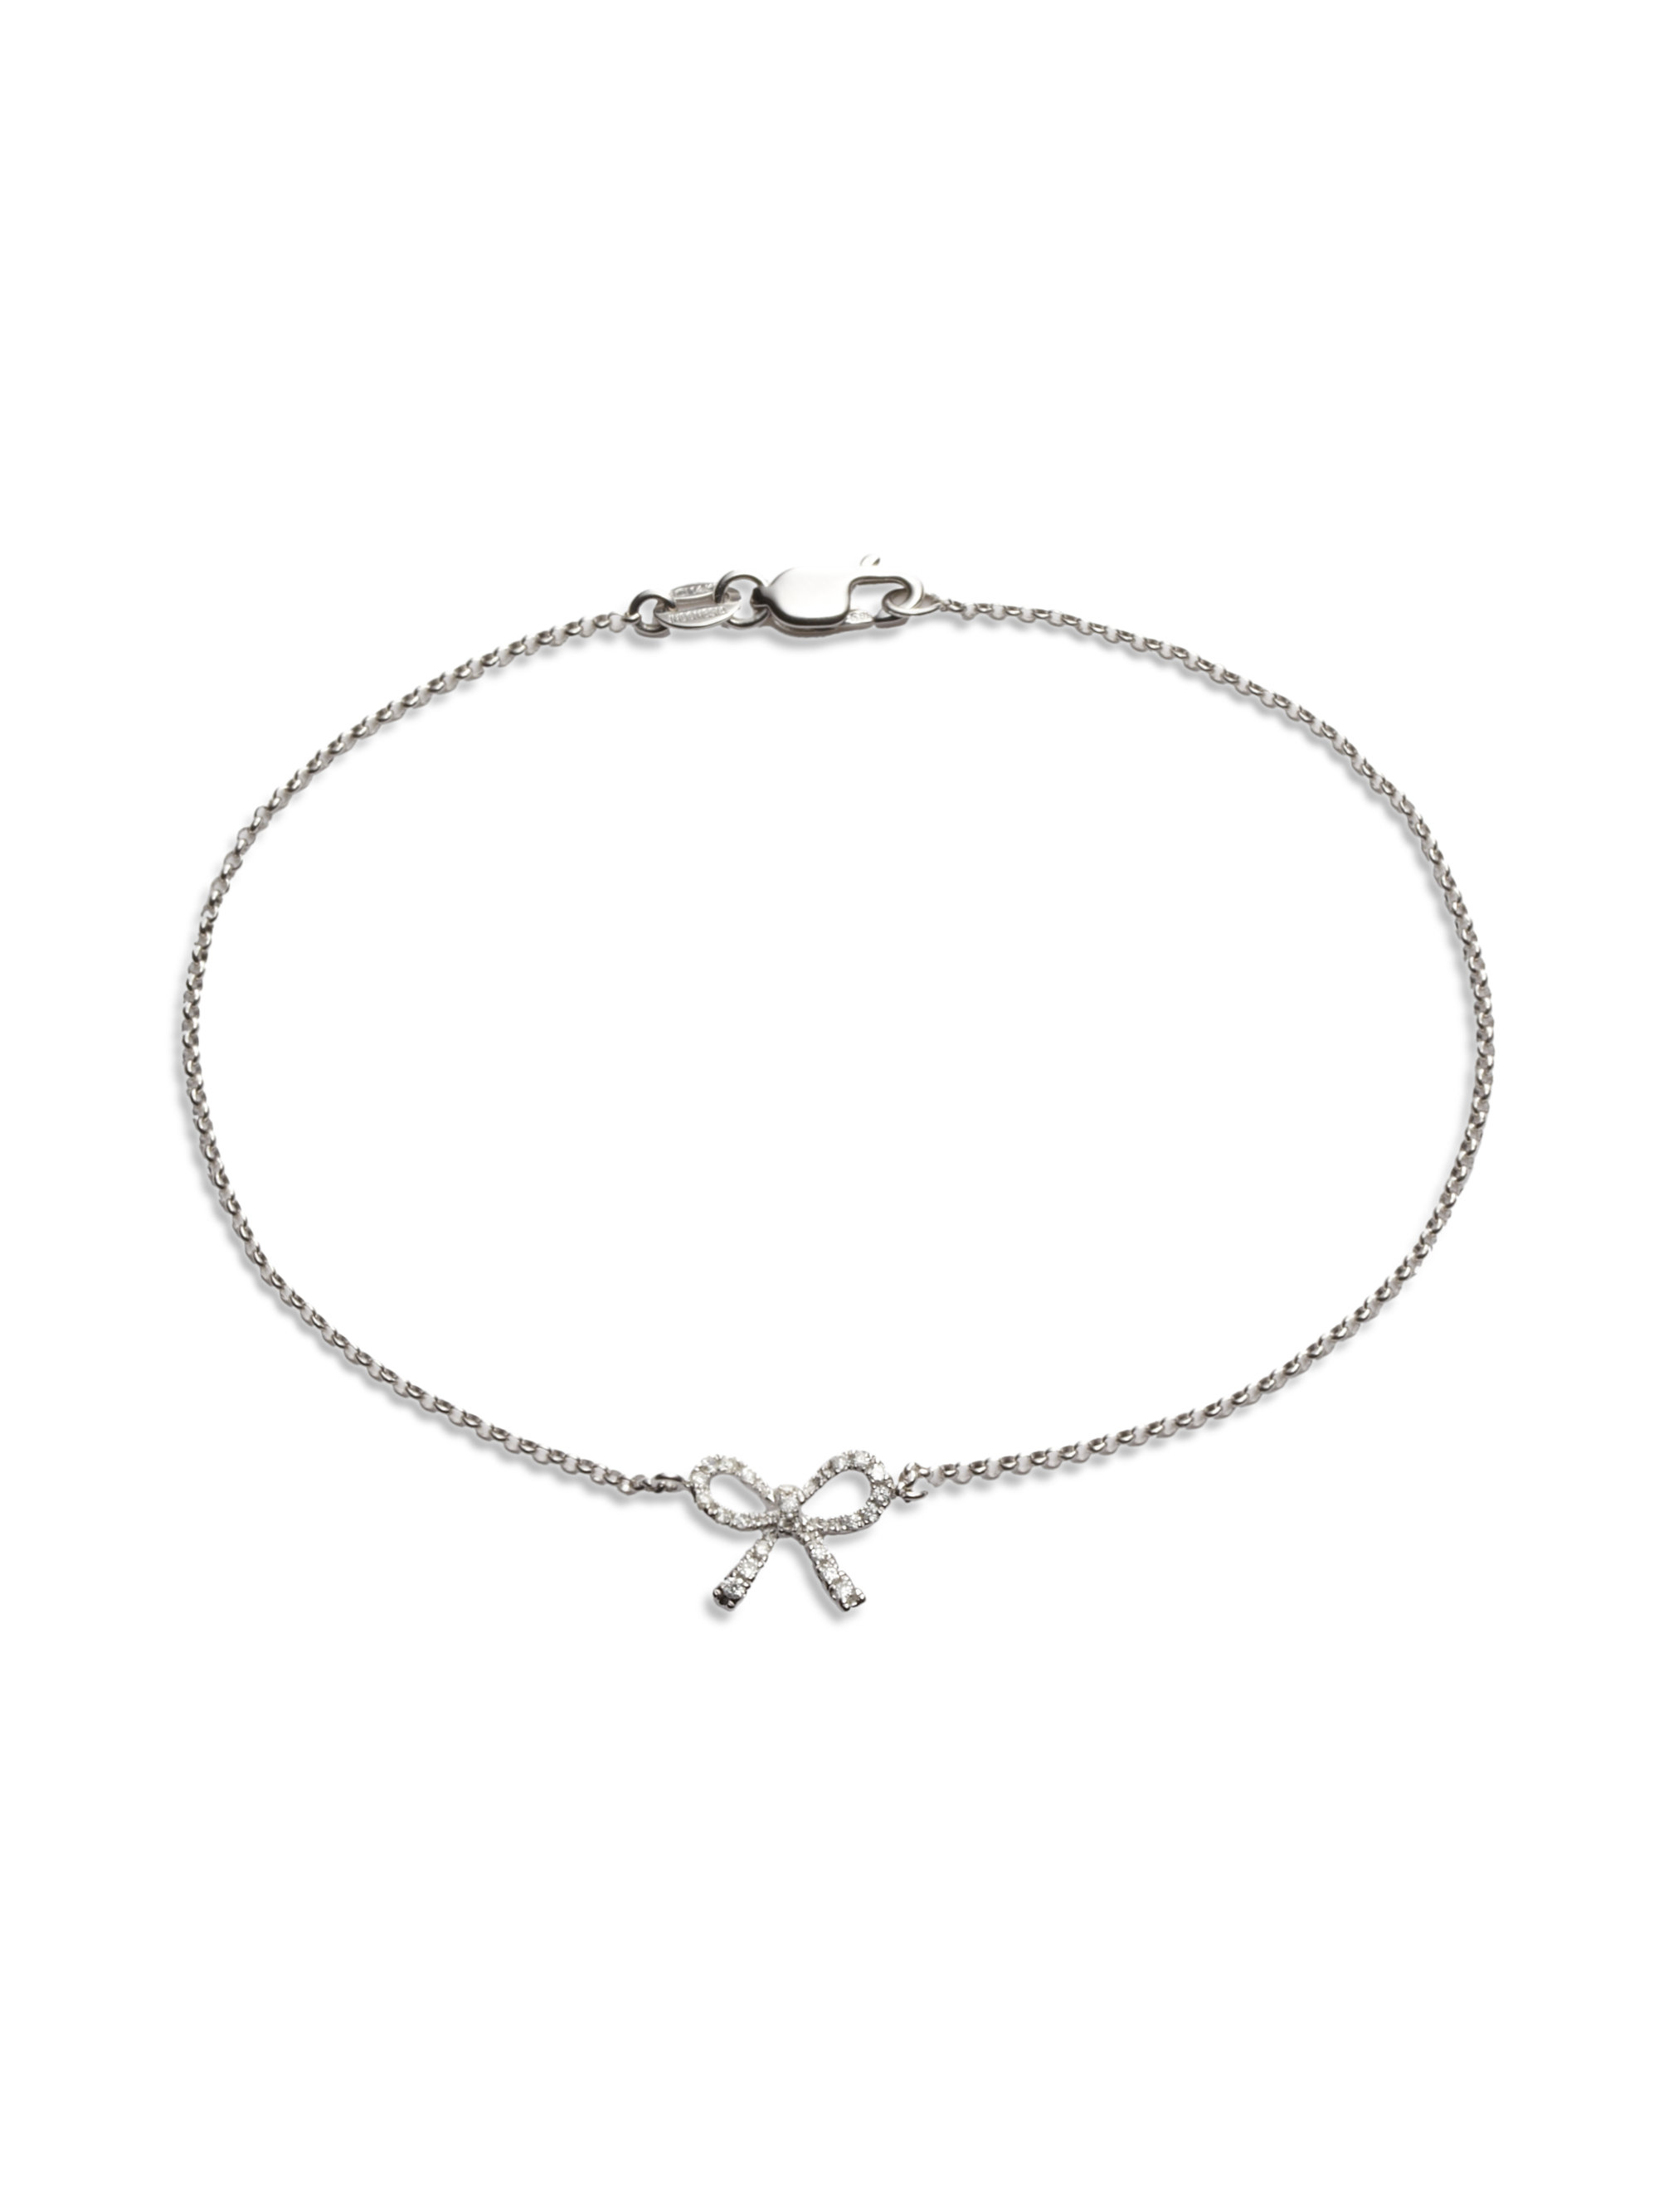 bow karen necklace jewellery shop silver young products handmade sterling bracelet